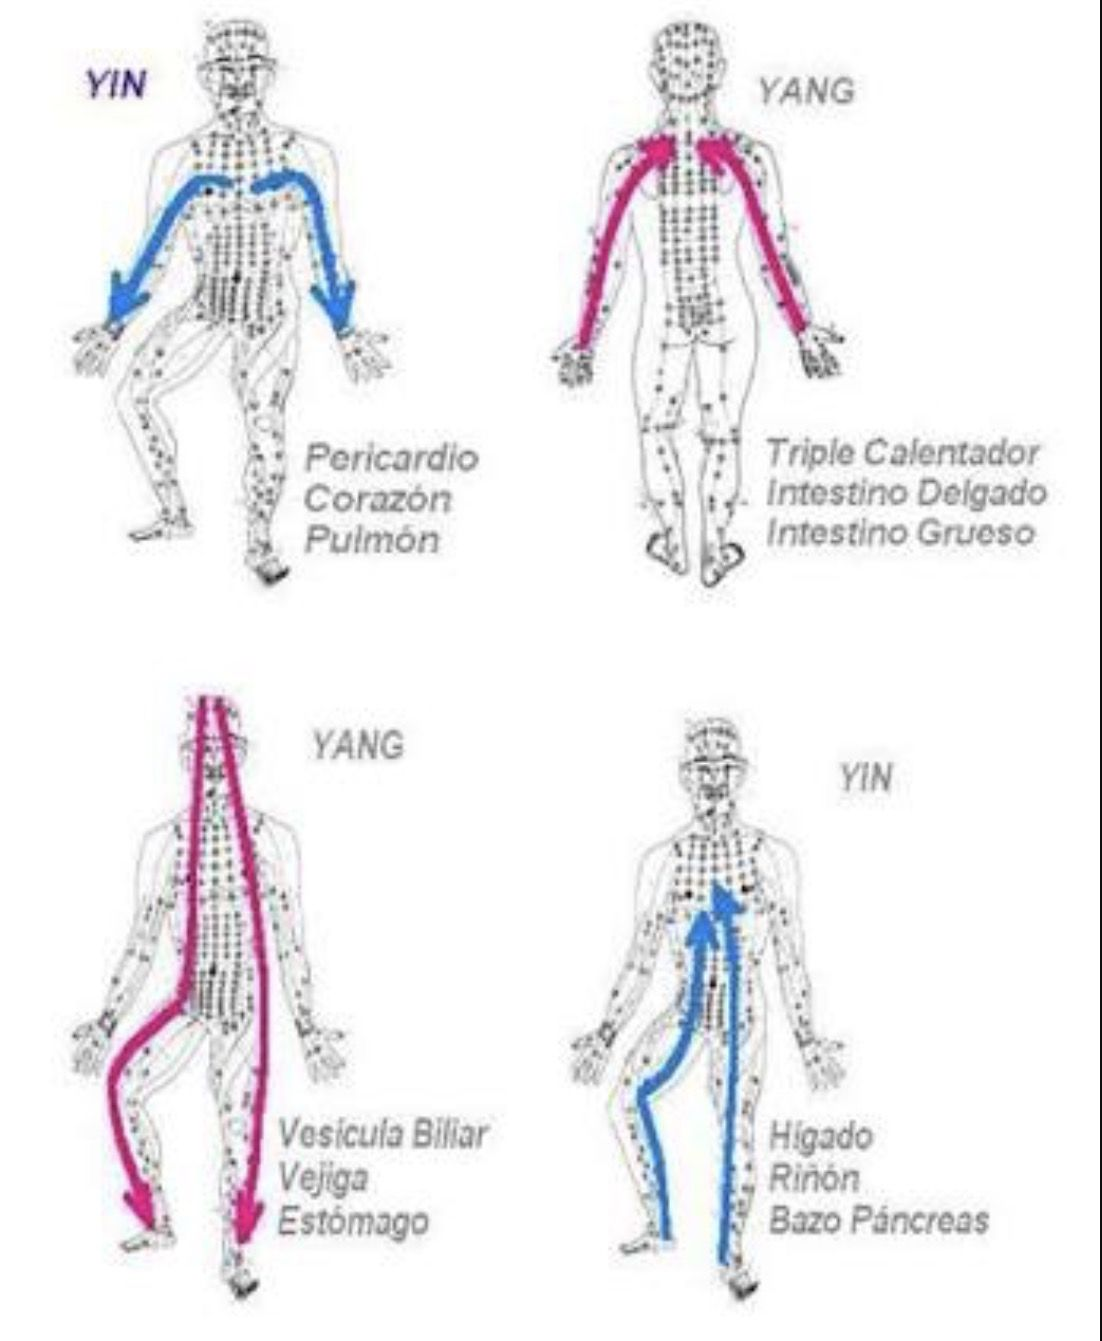 Pin By Bicky Davila On Acupuntura Pinterest Acupuncture Qi Gong